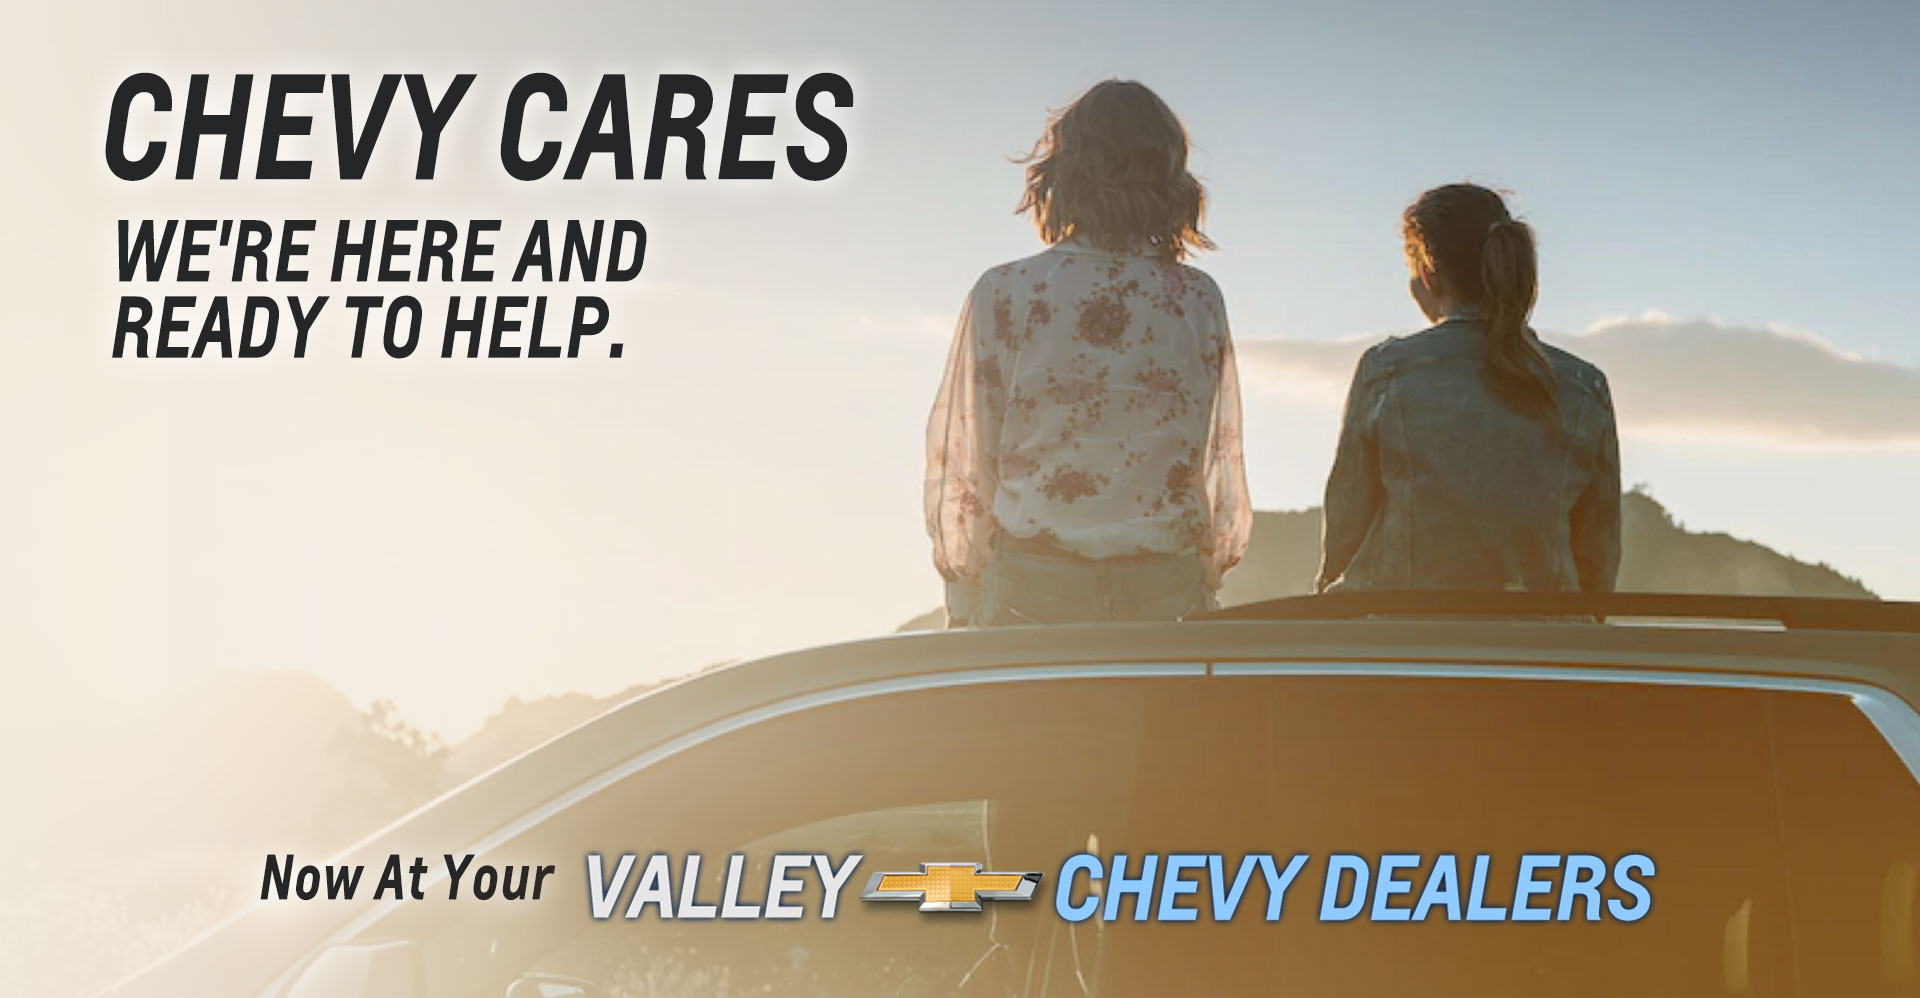 02172020 CHEVY CARES